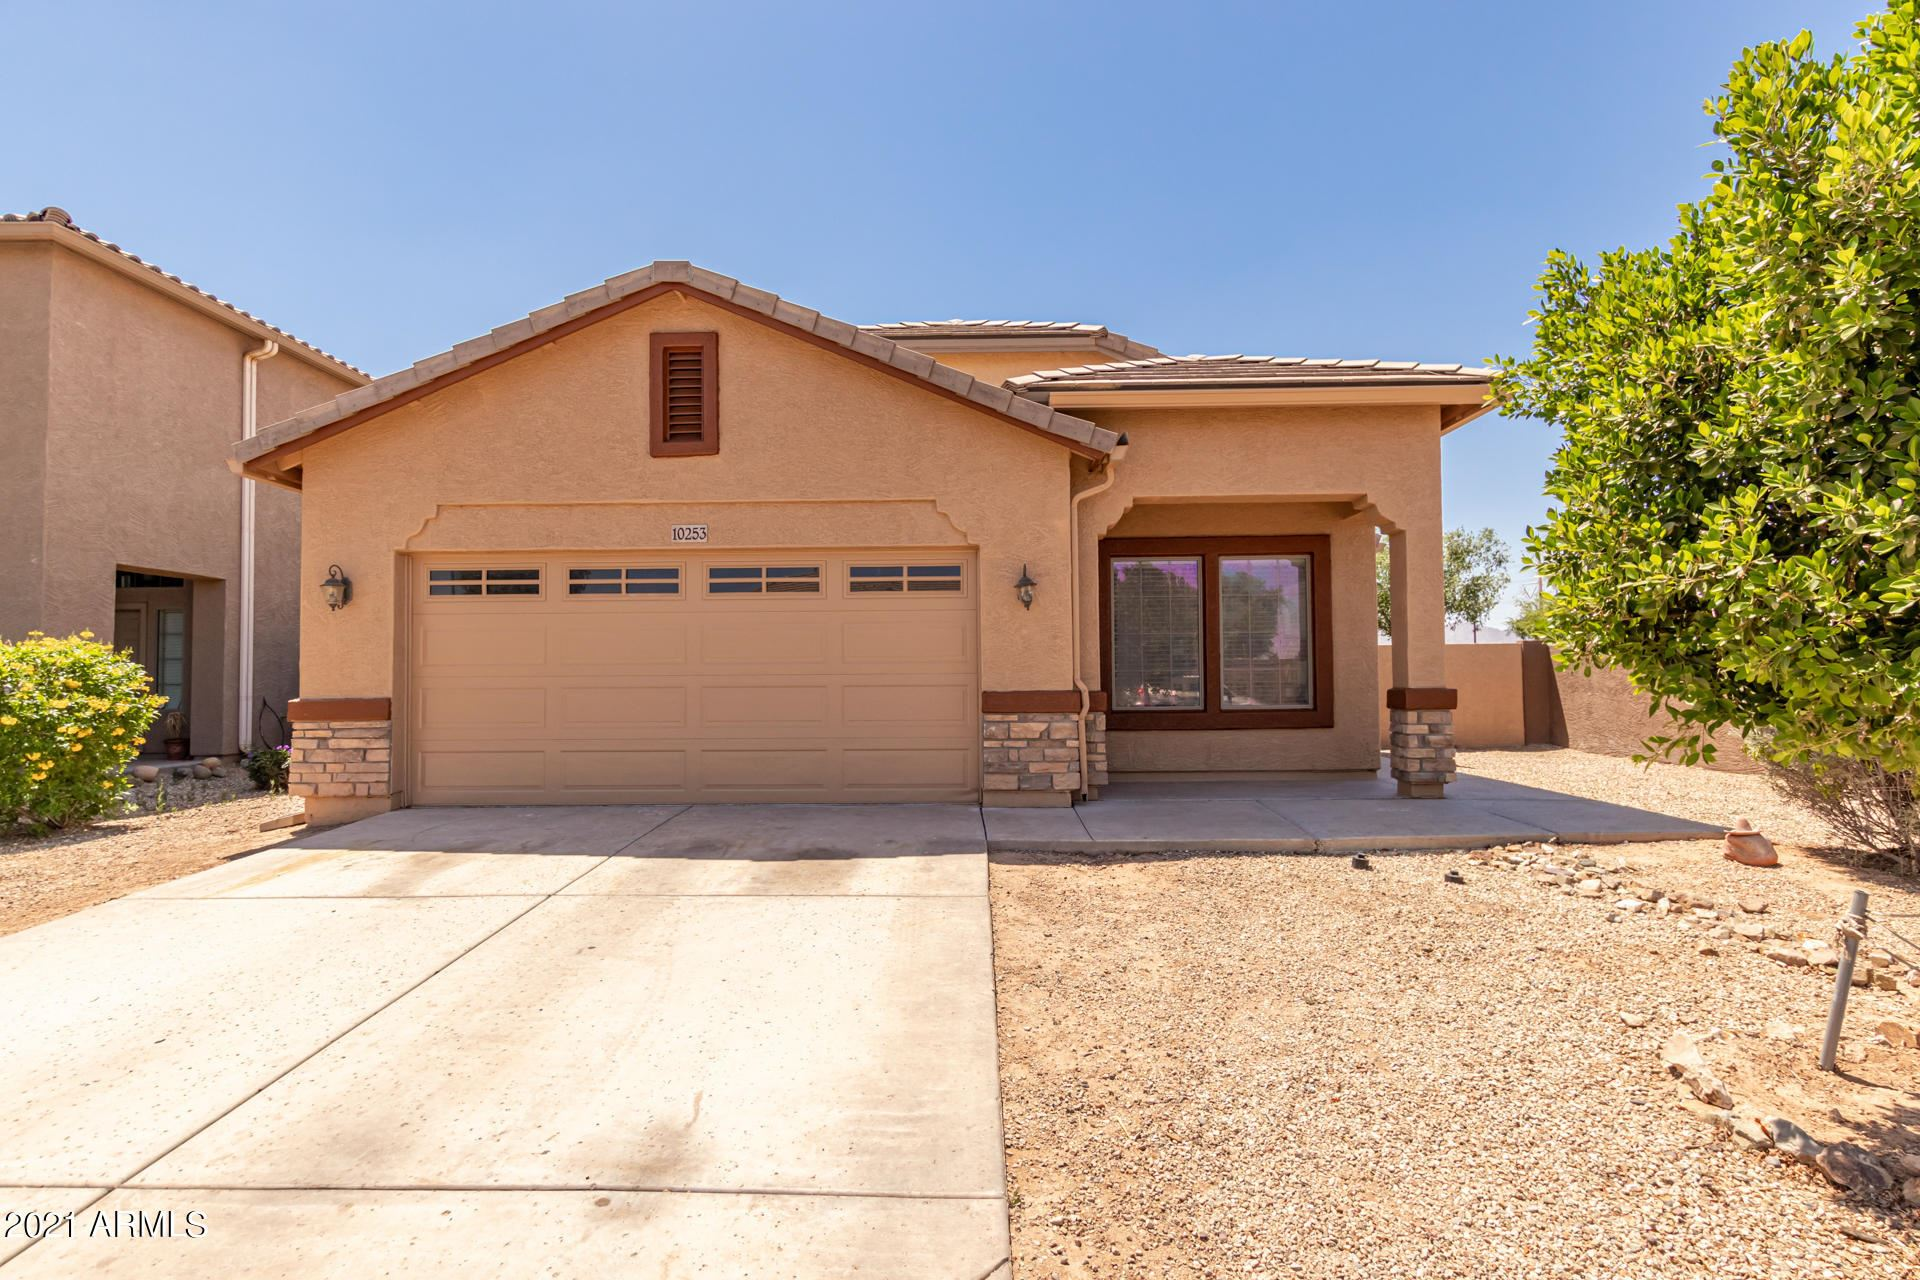 Photo of 10253 W CHIPMAN Road, Tolleson, AZ 85353 (MLS # 6231223)